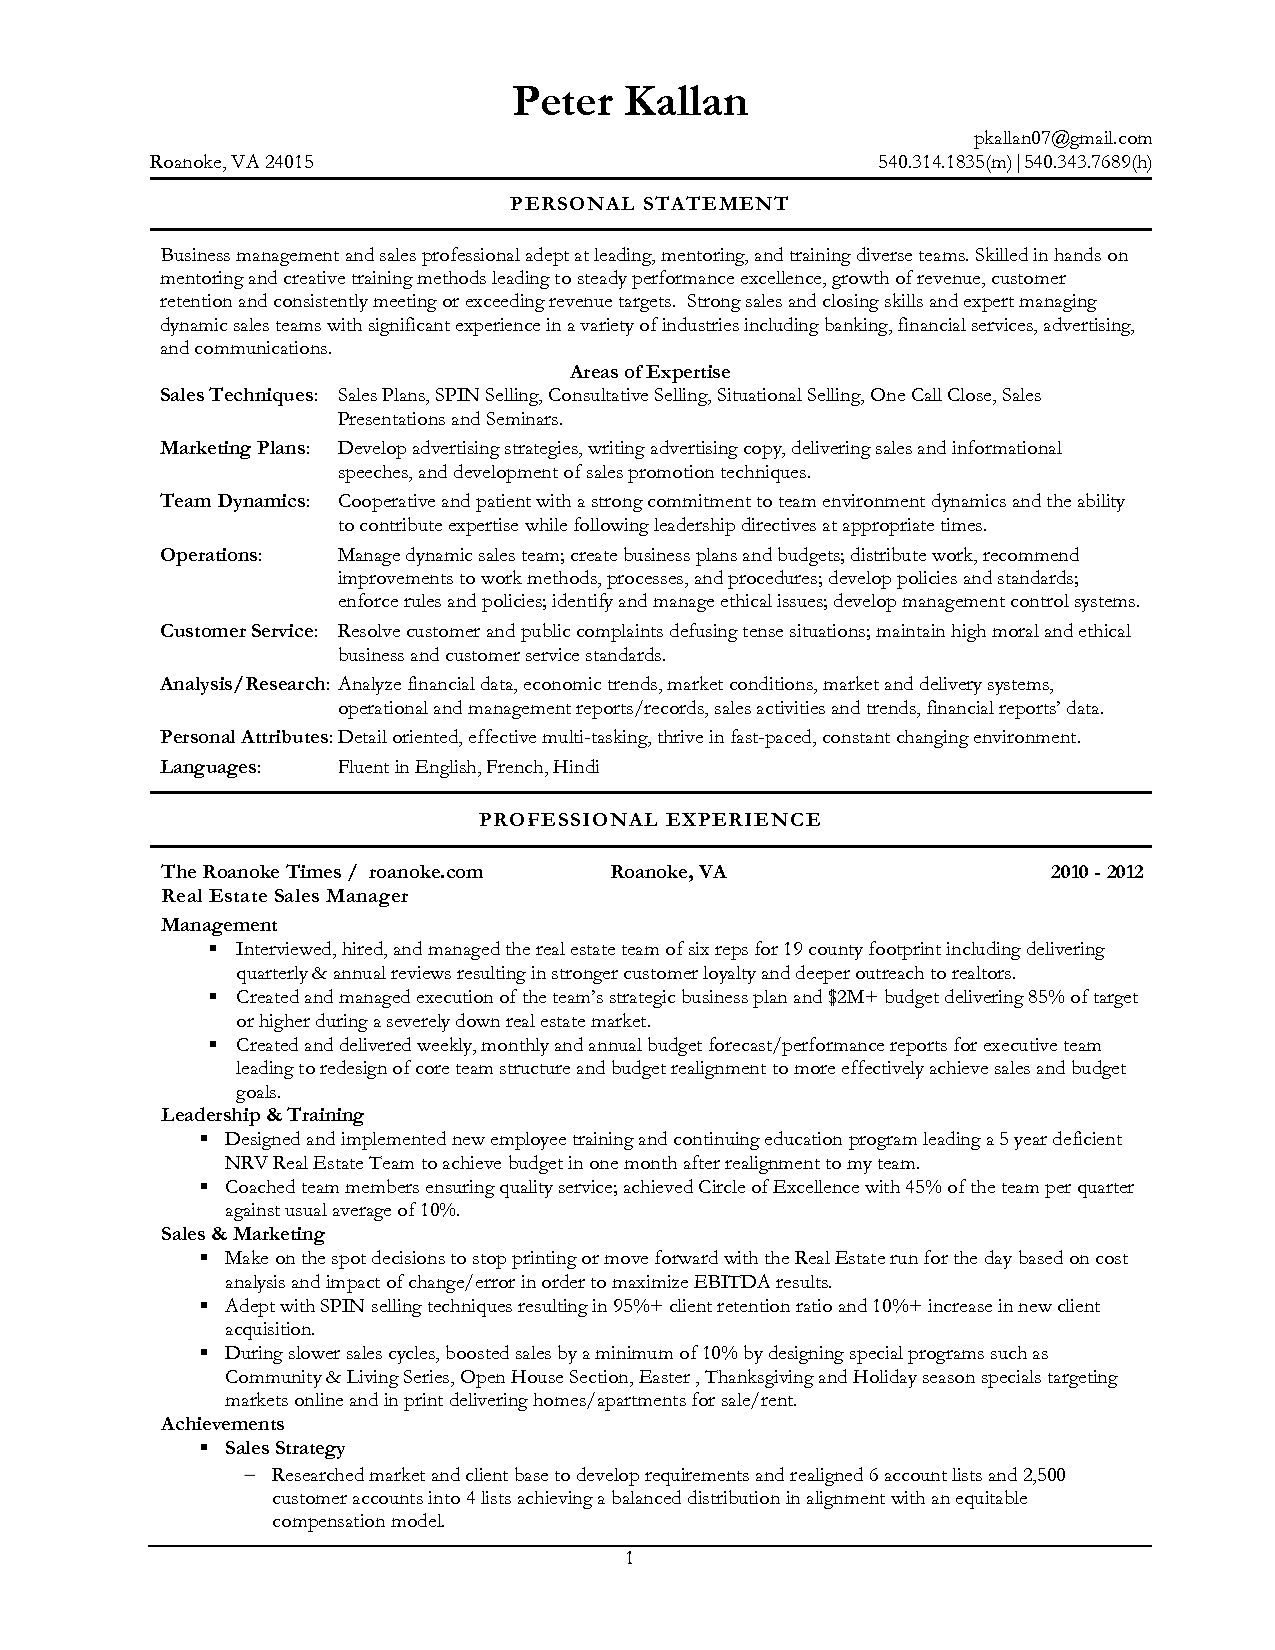 Personal Statement On Resumes Gse Bookbinder Co  Personal Summary Resume